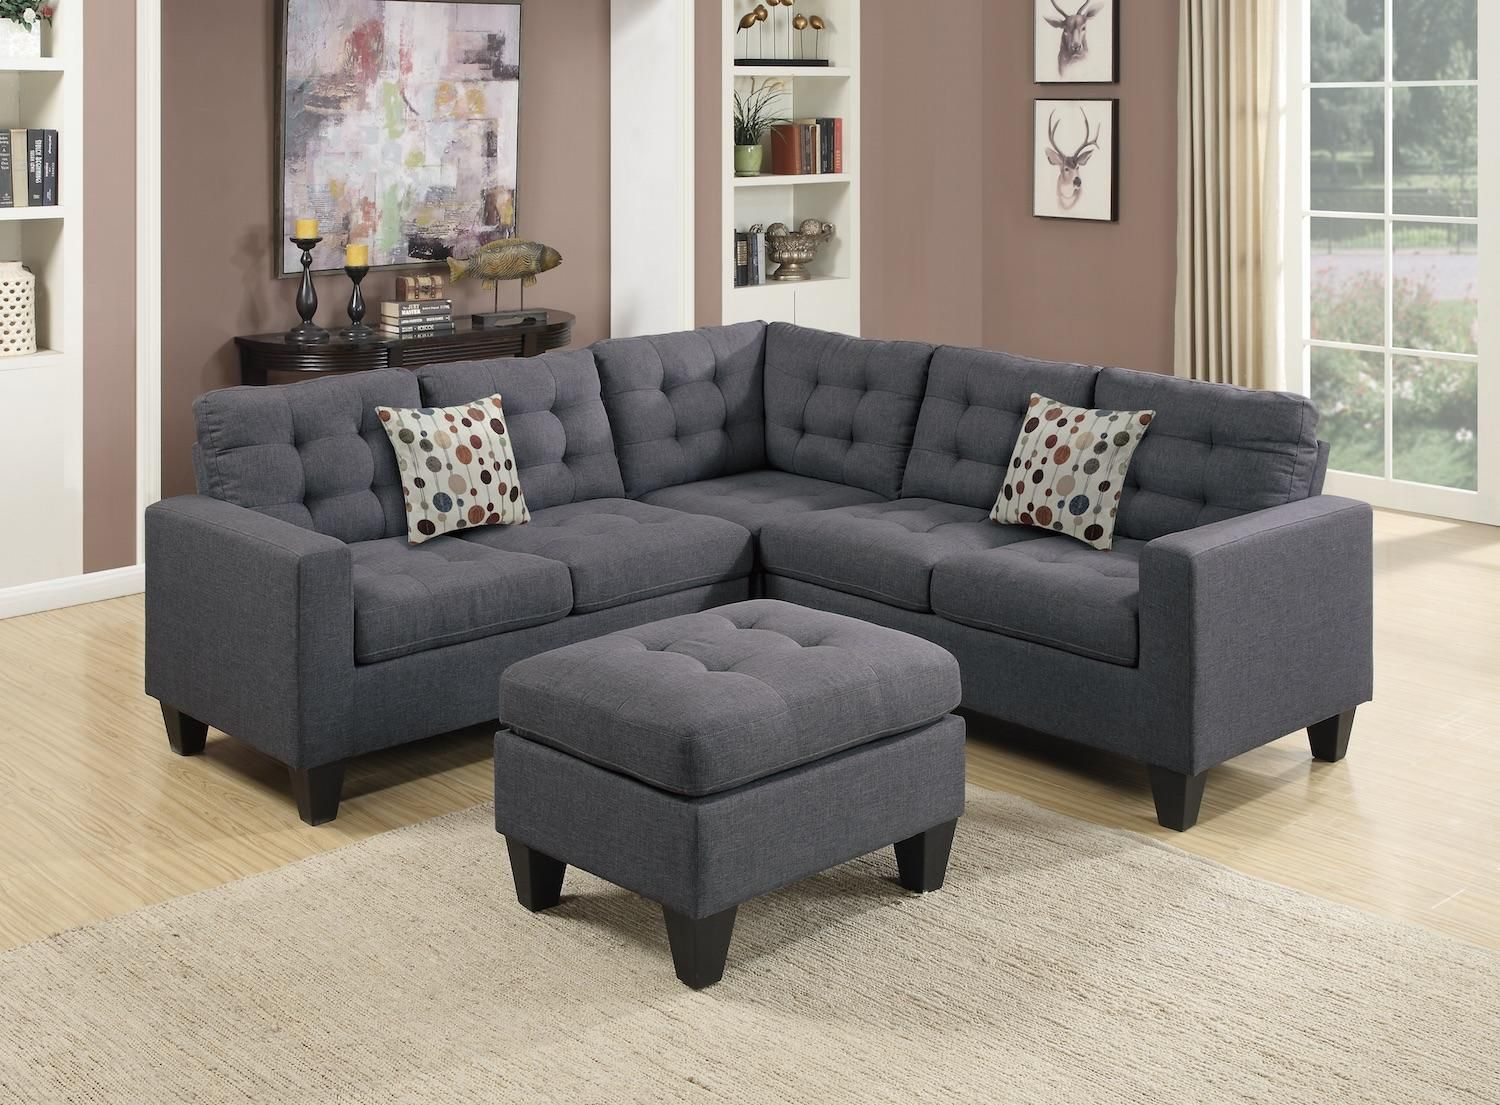 Grey Sectional Couch Wayfair In 2020 With Images Sectional